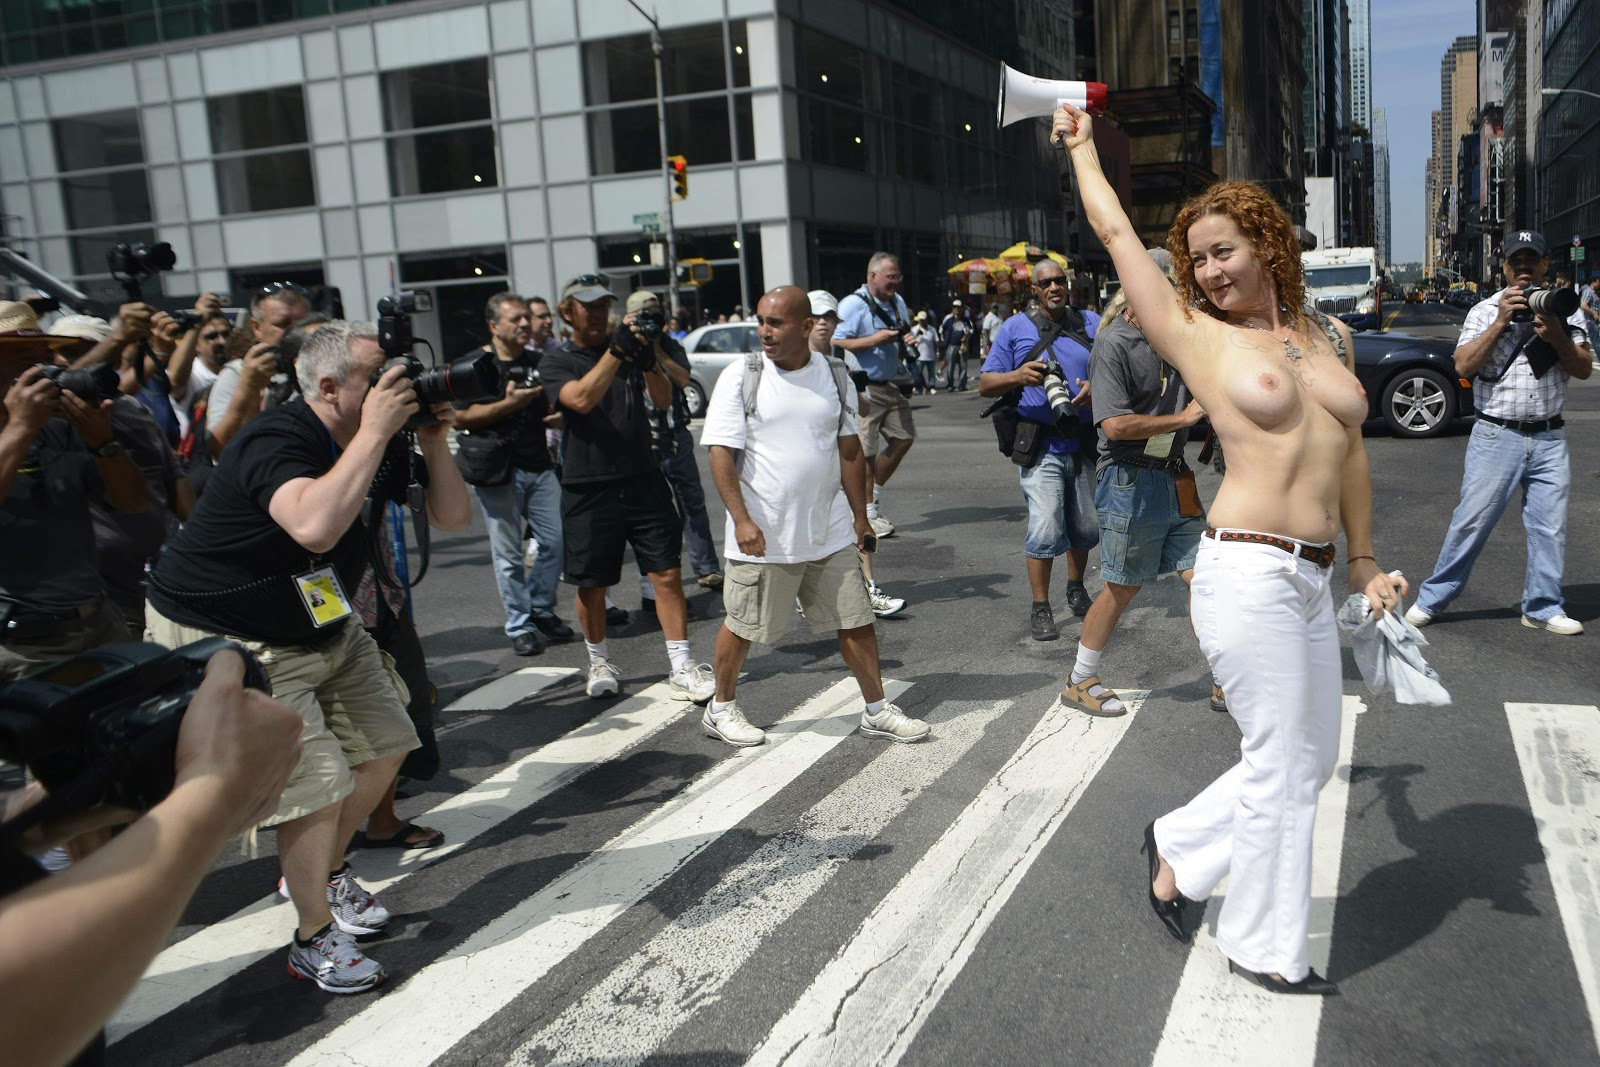 Federal ruling allows women to legally go topless in six states